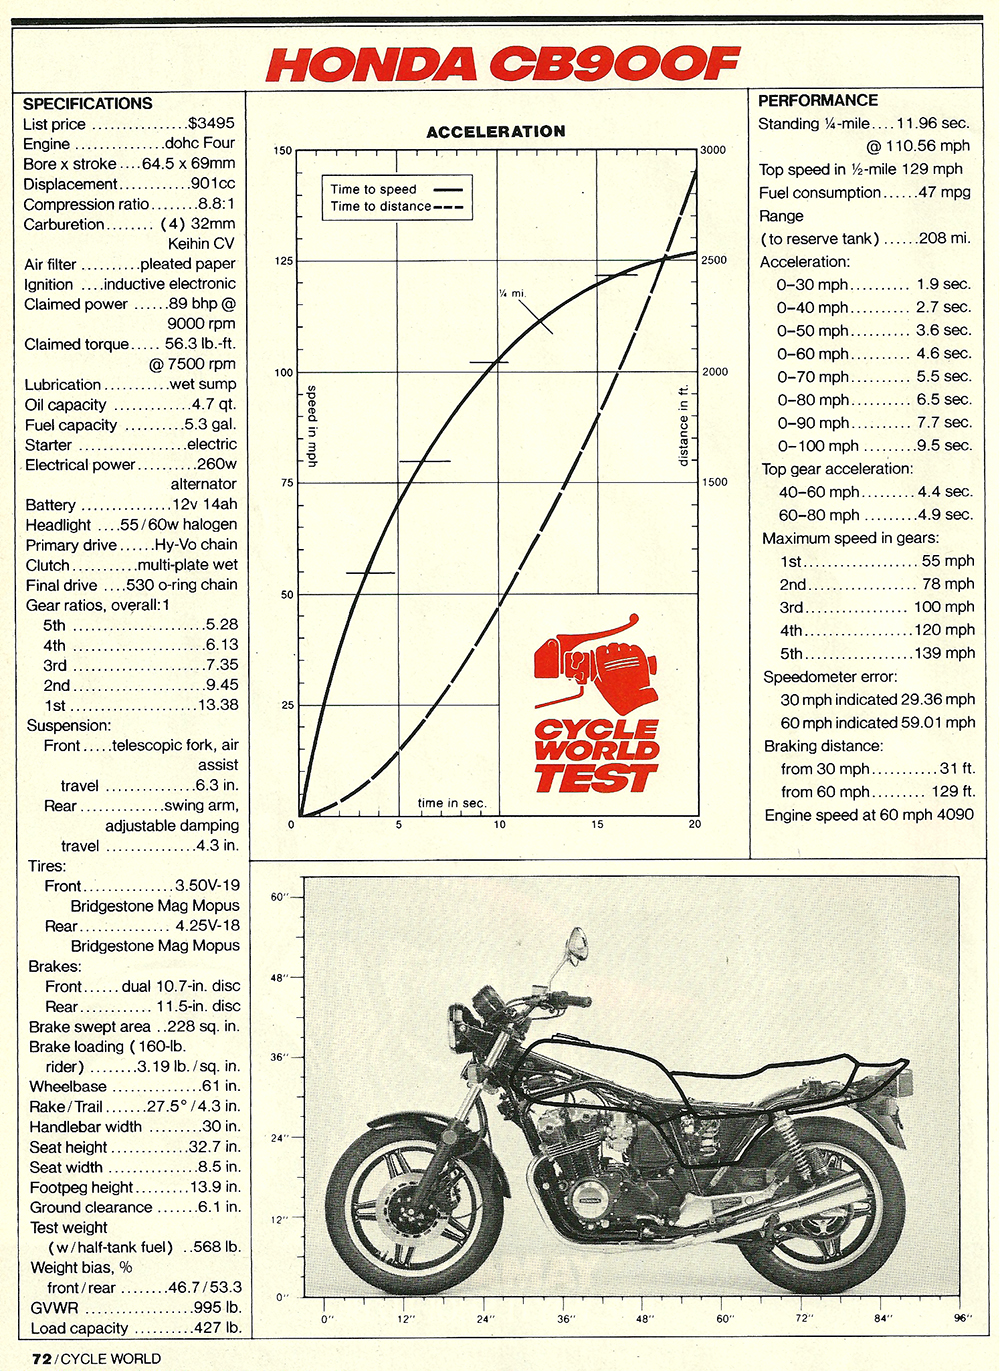 1981 CB900F Super Sport road test 7.jpg